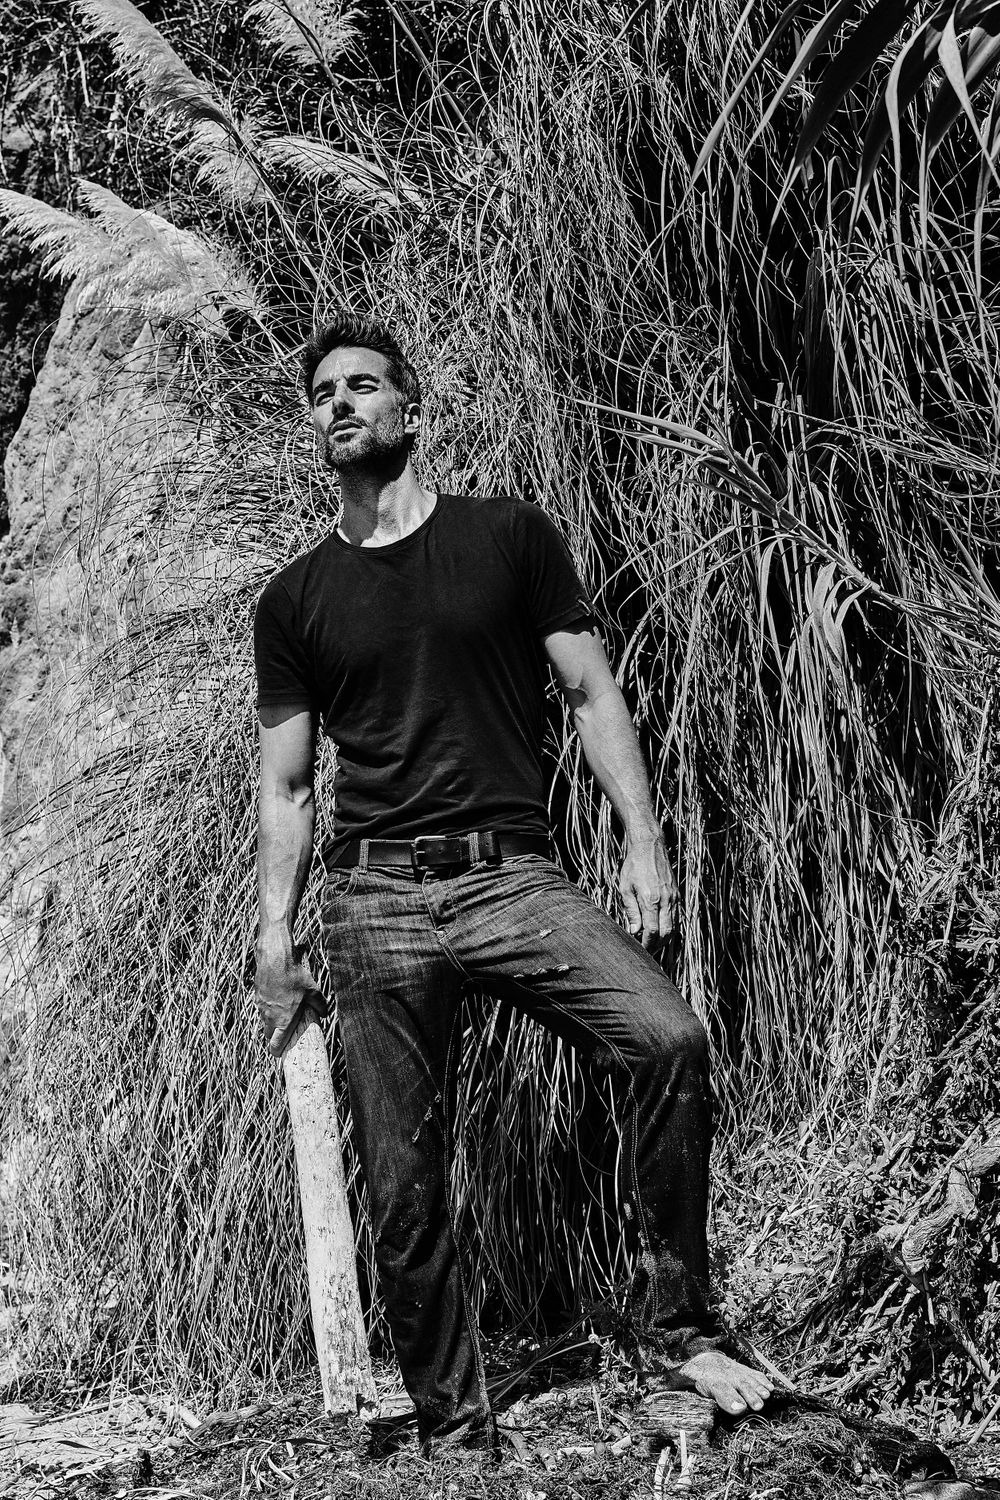 Model Colin Devitt from LA Models wearing denim jeans and black t shirt El Matador tall grass